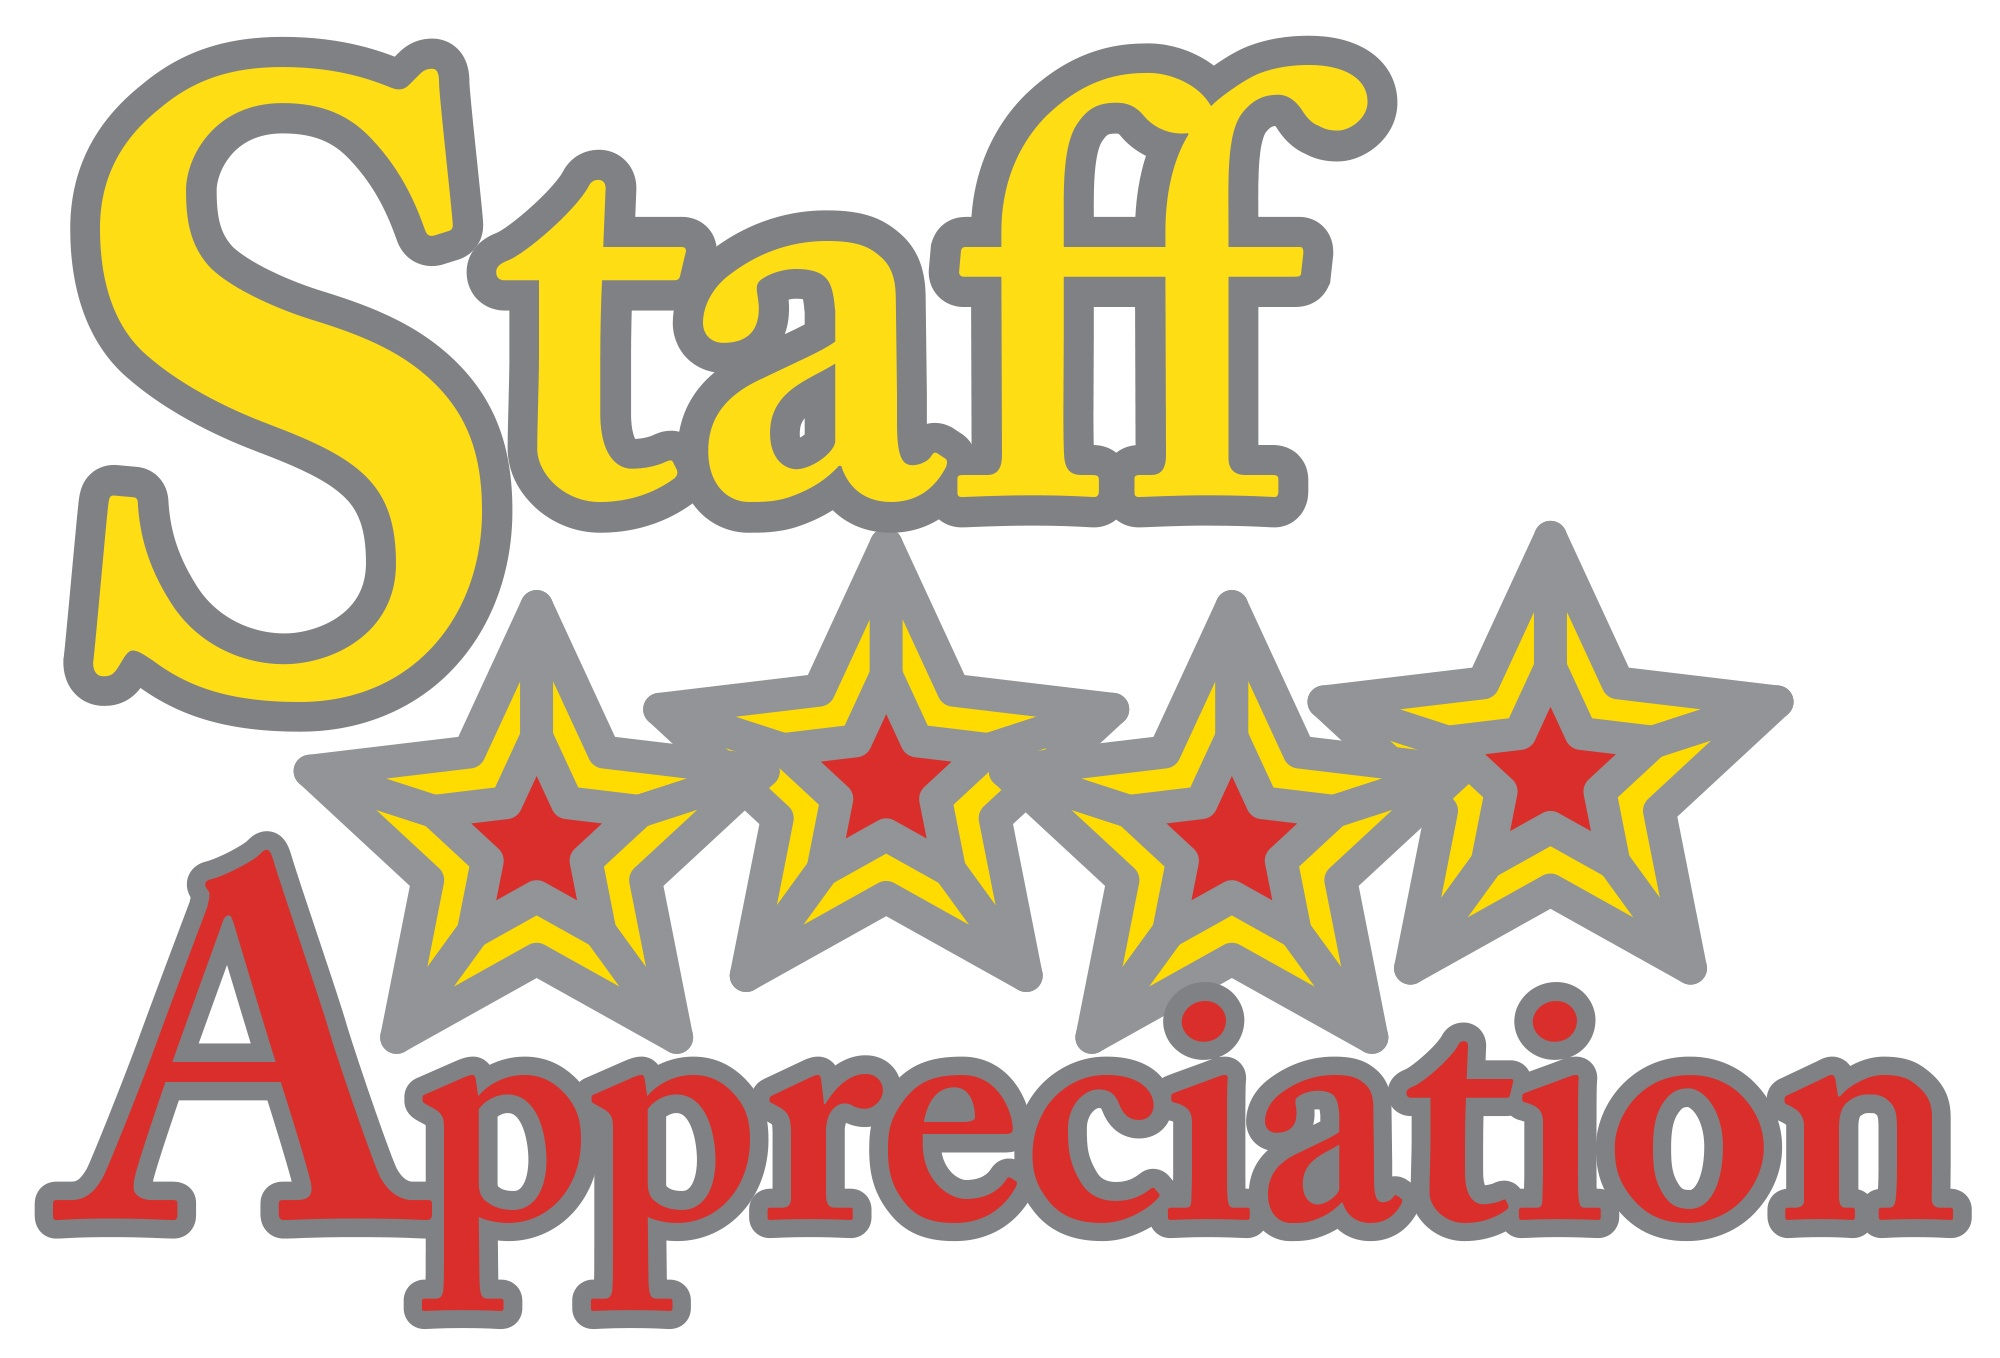 staff appreciation volunteer opportunities staff training clipart Job Training Clip Art